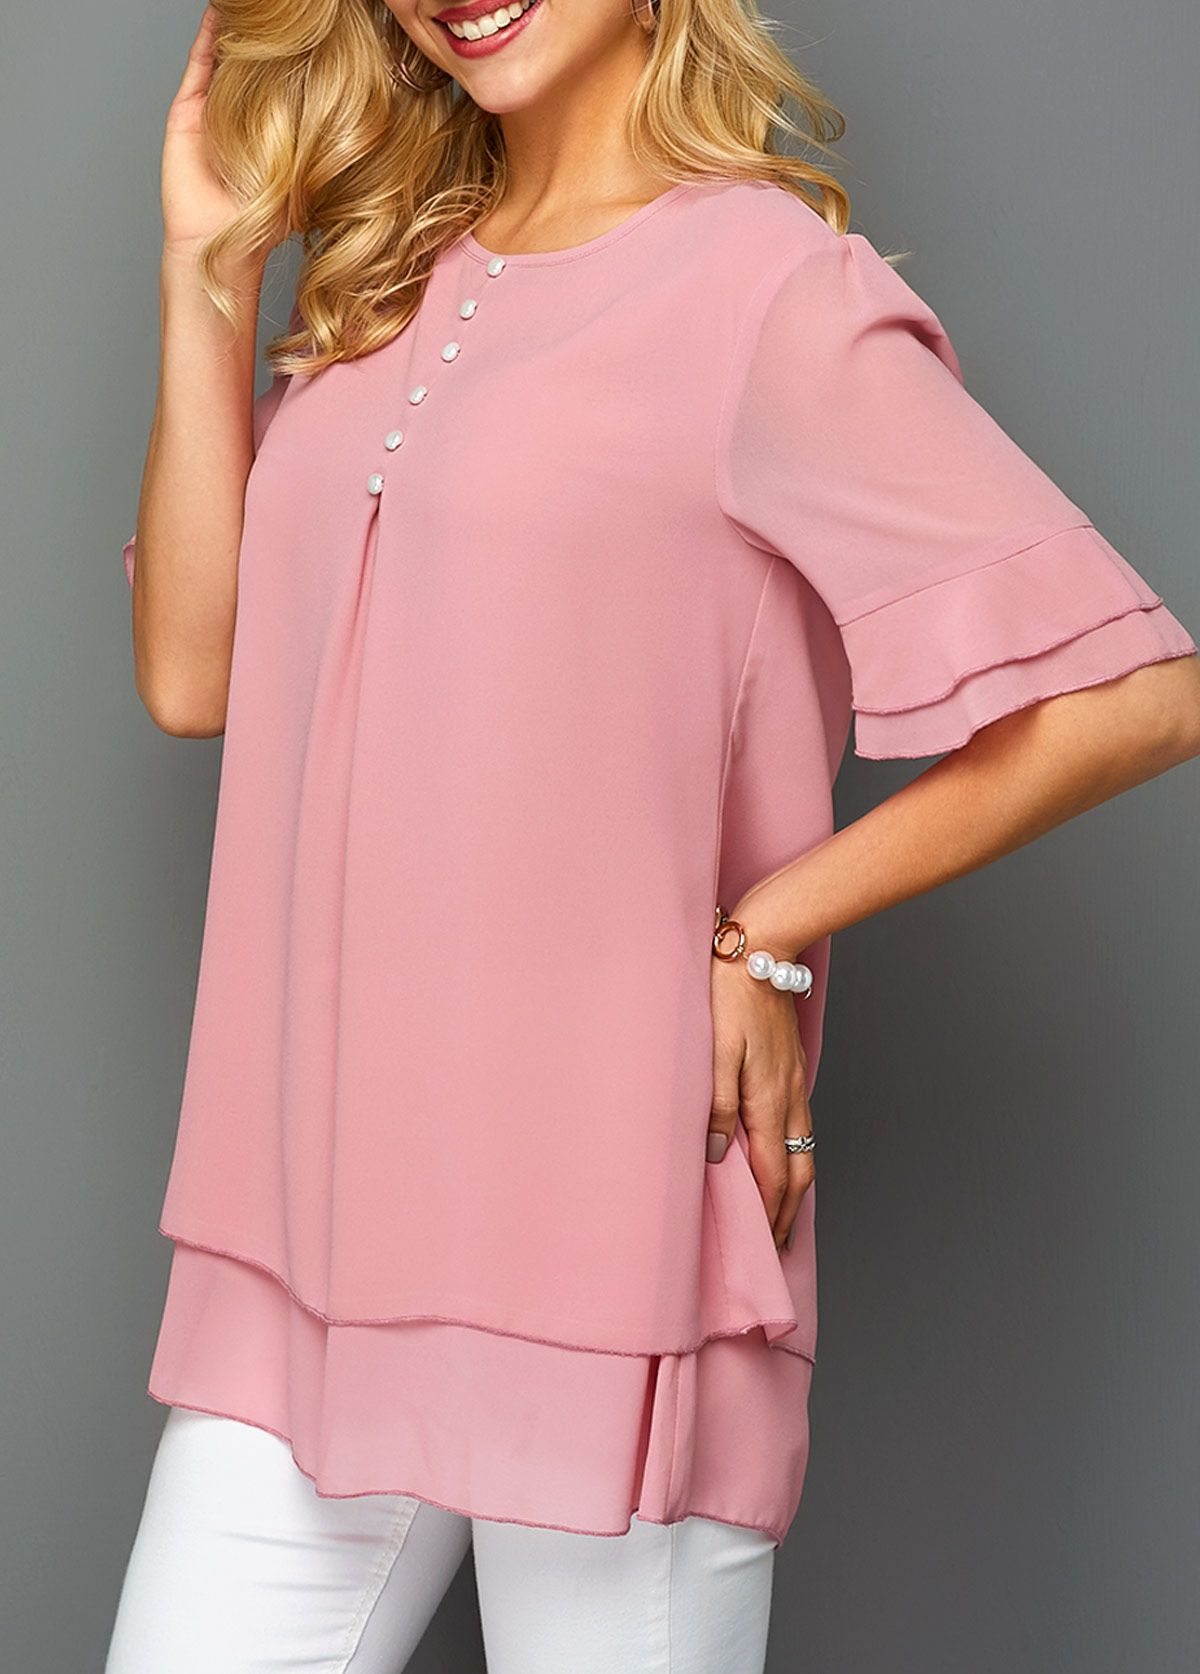 Half Sleeve Layered Hem Button Detail Chiffon Blouse | Rosewe.com – USD $28.33